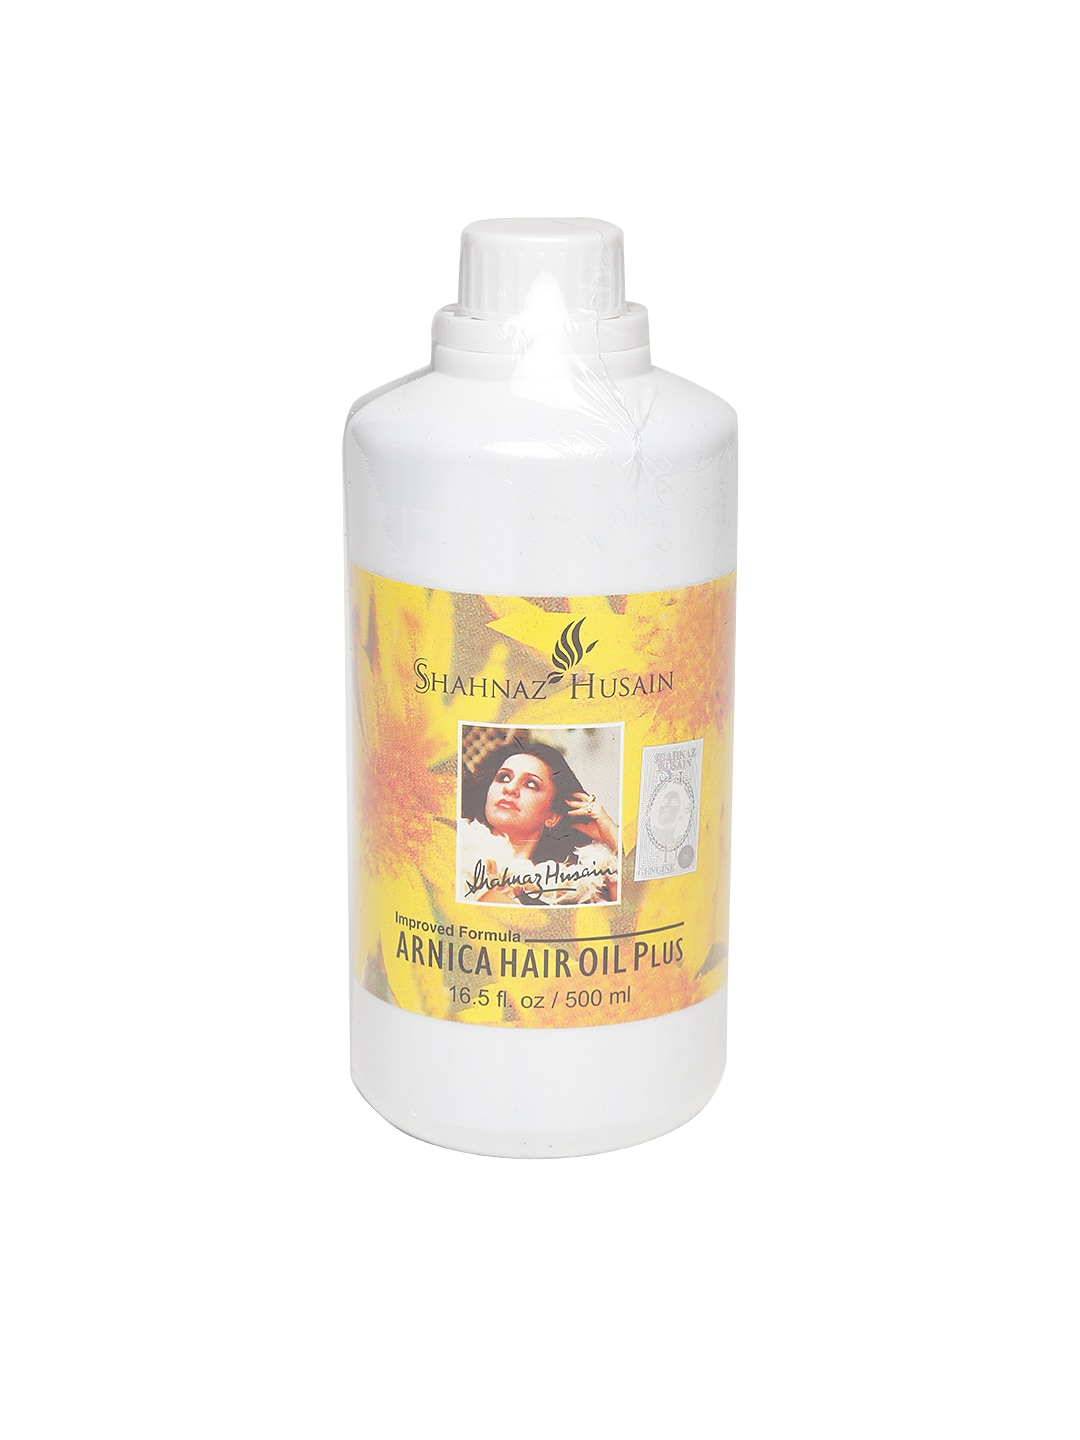 Shahnaz Husain Unisex Arnica Hair Oil Plus 500 ml image